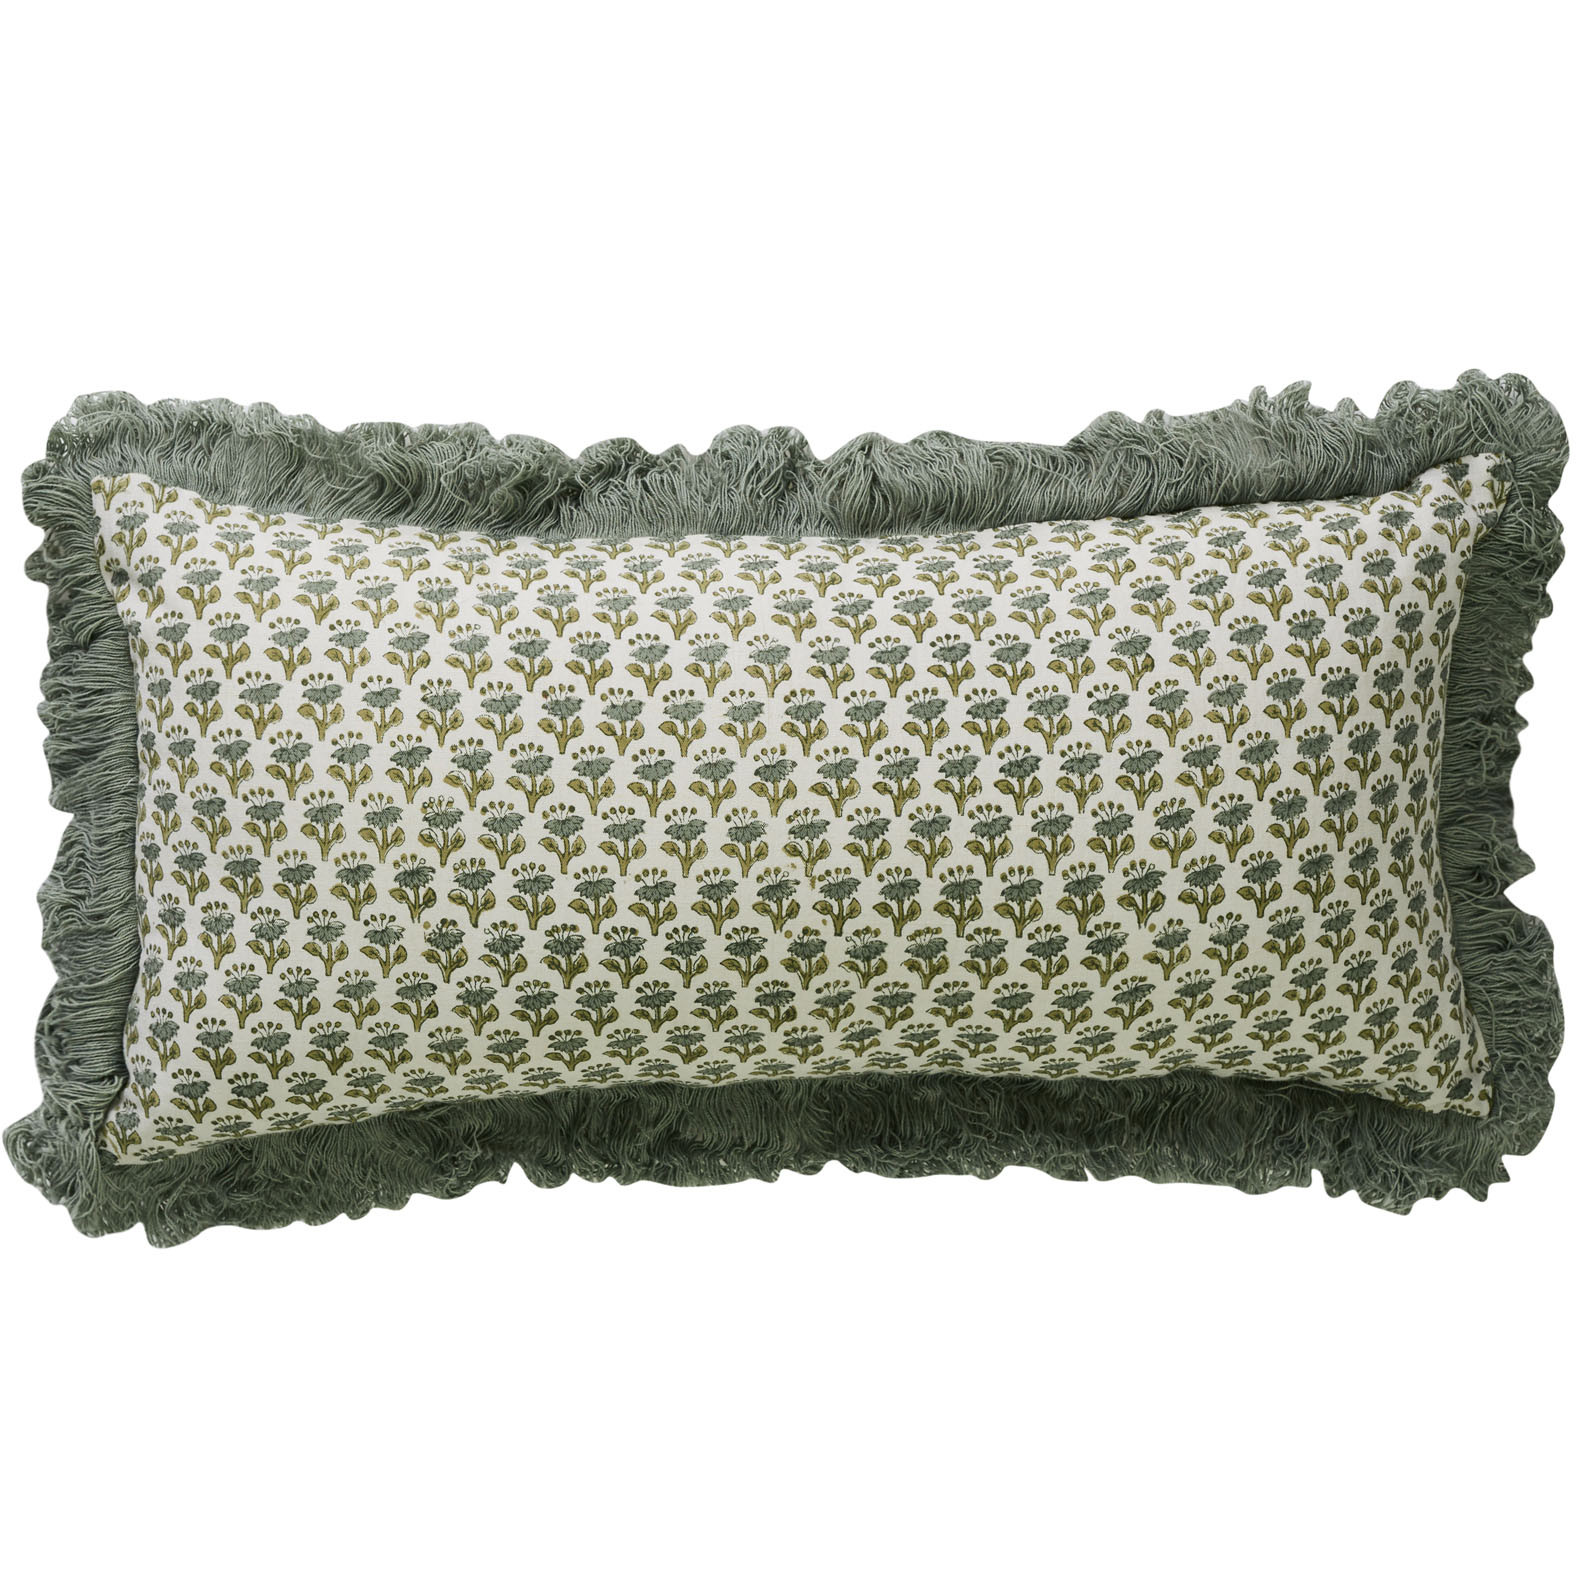 Tuscan Fiore Cushion